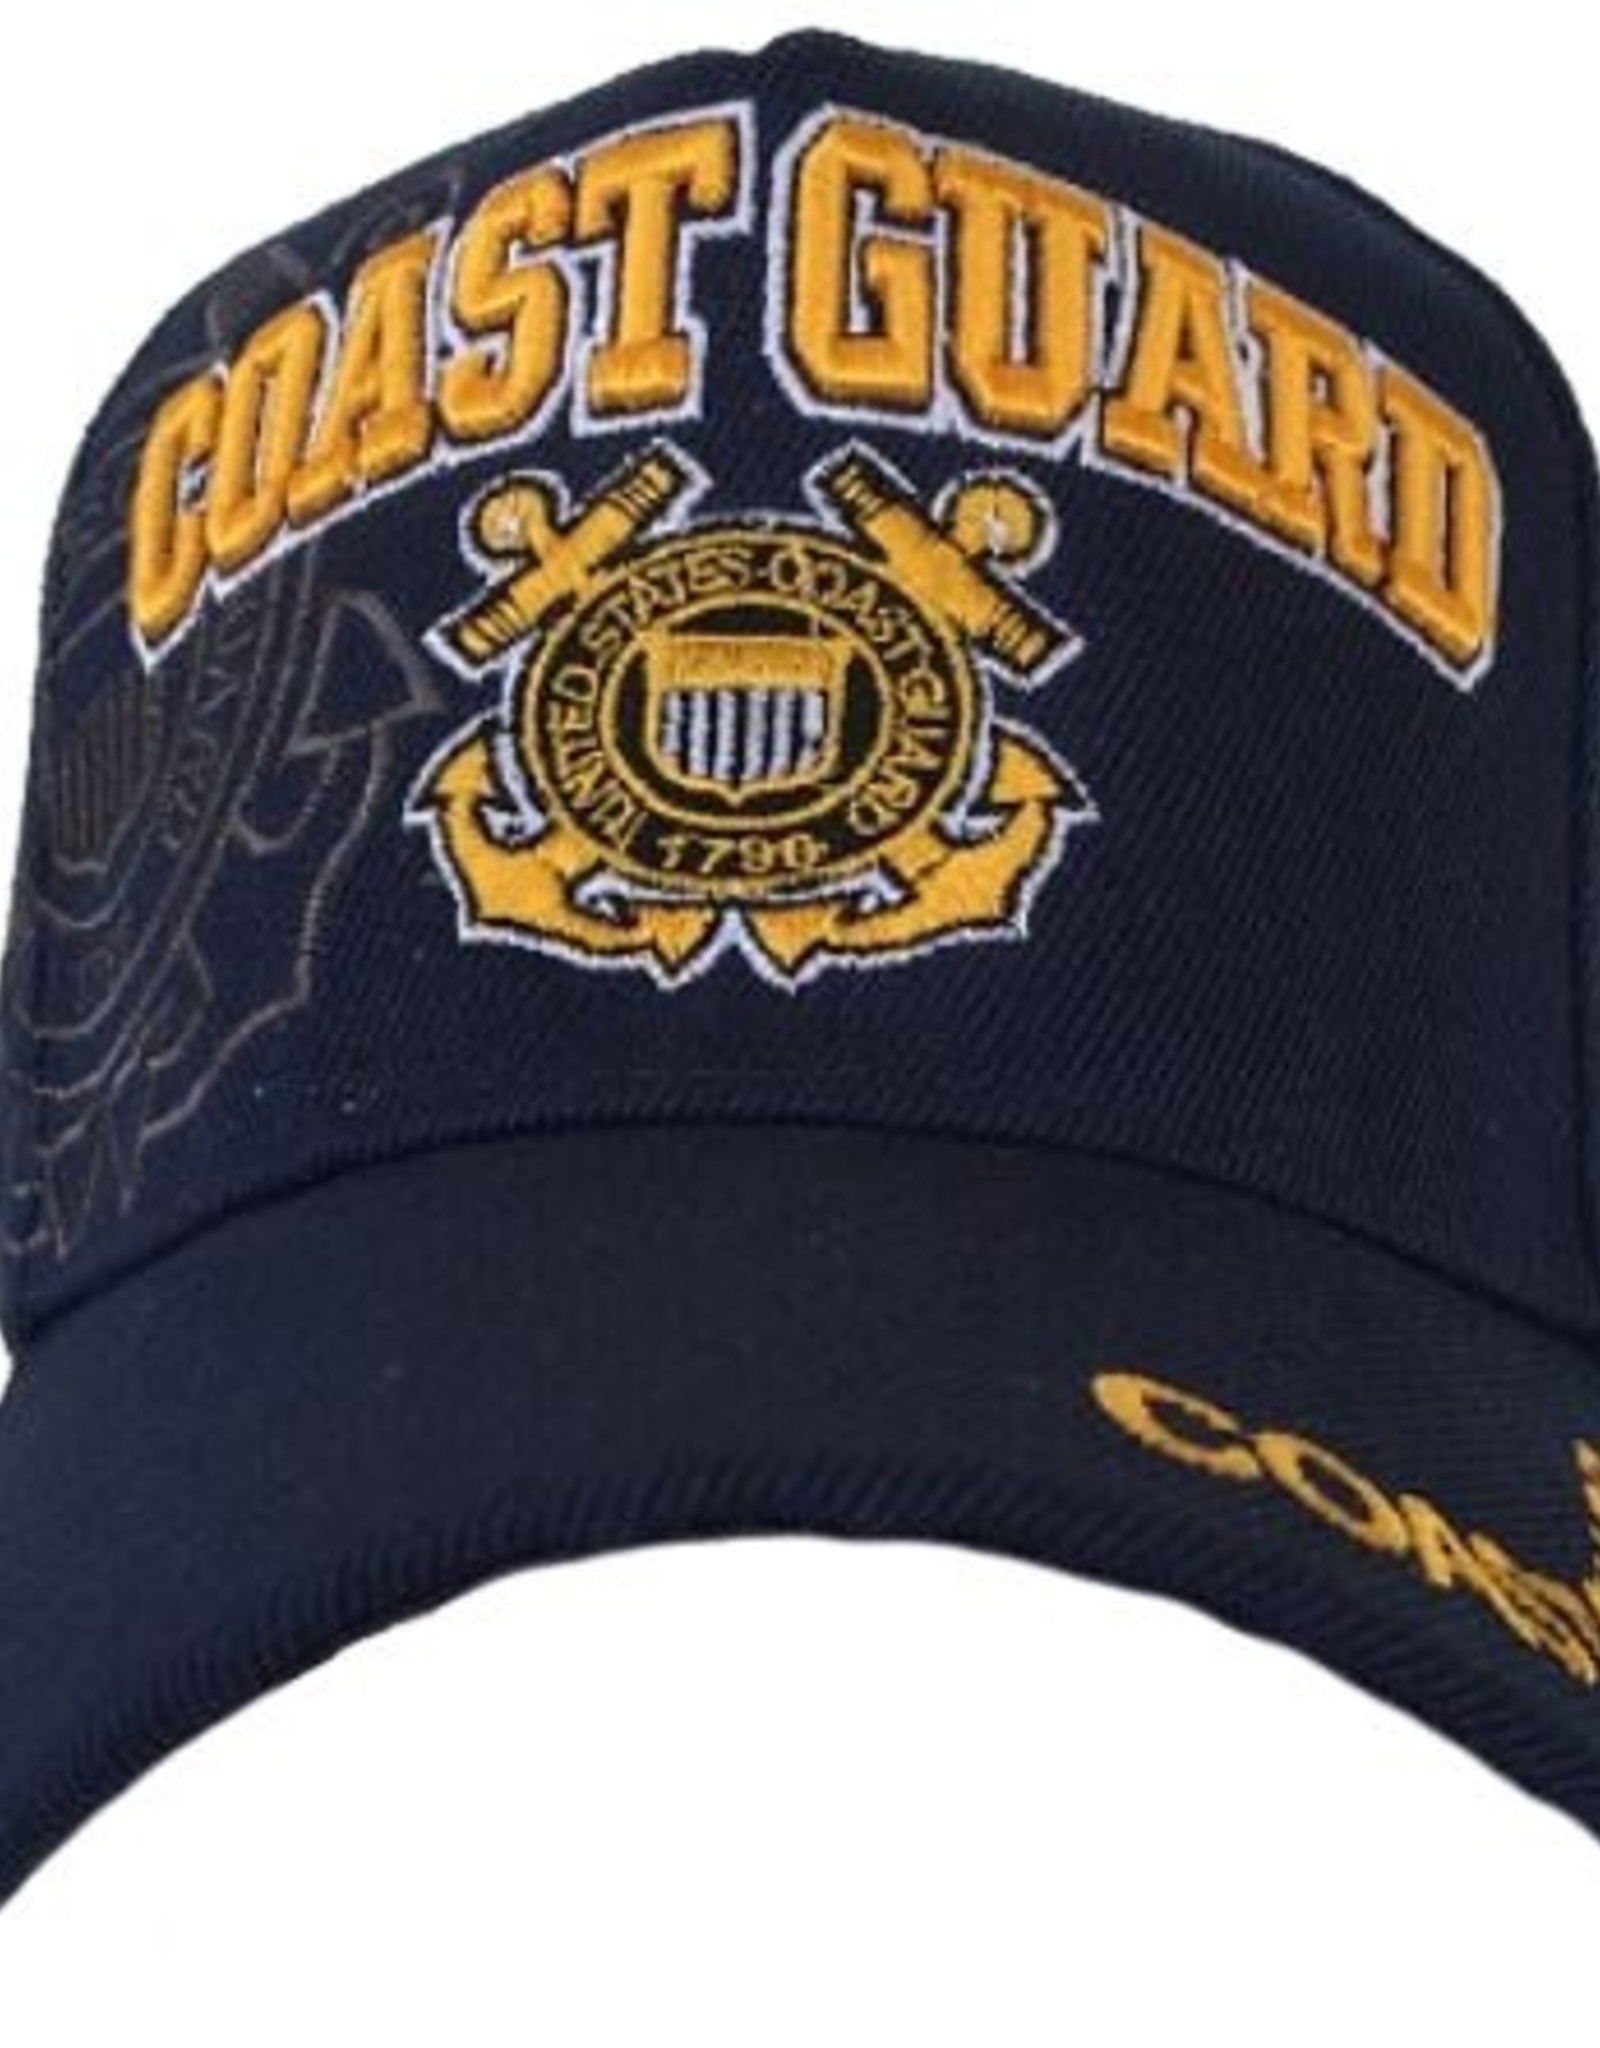 MidMil Coast Guard Hat with Emblem and Shadow Black